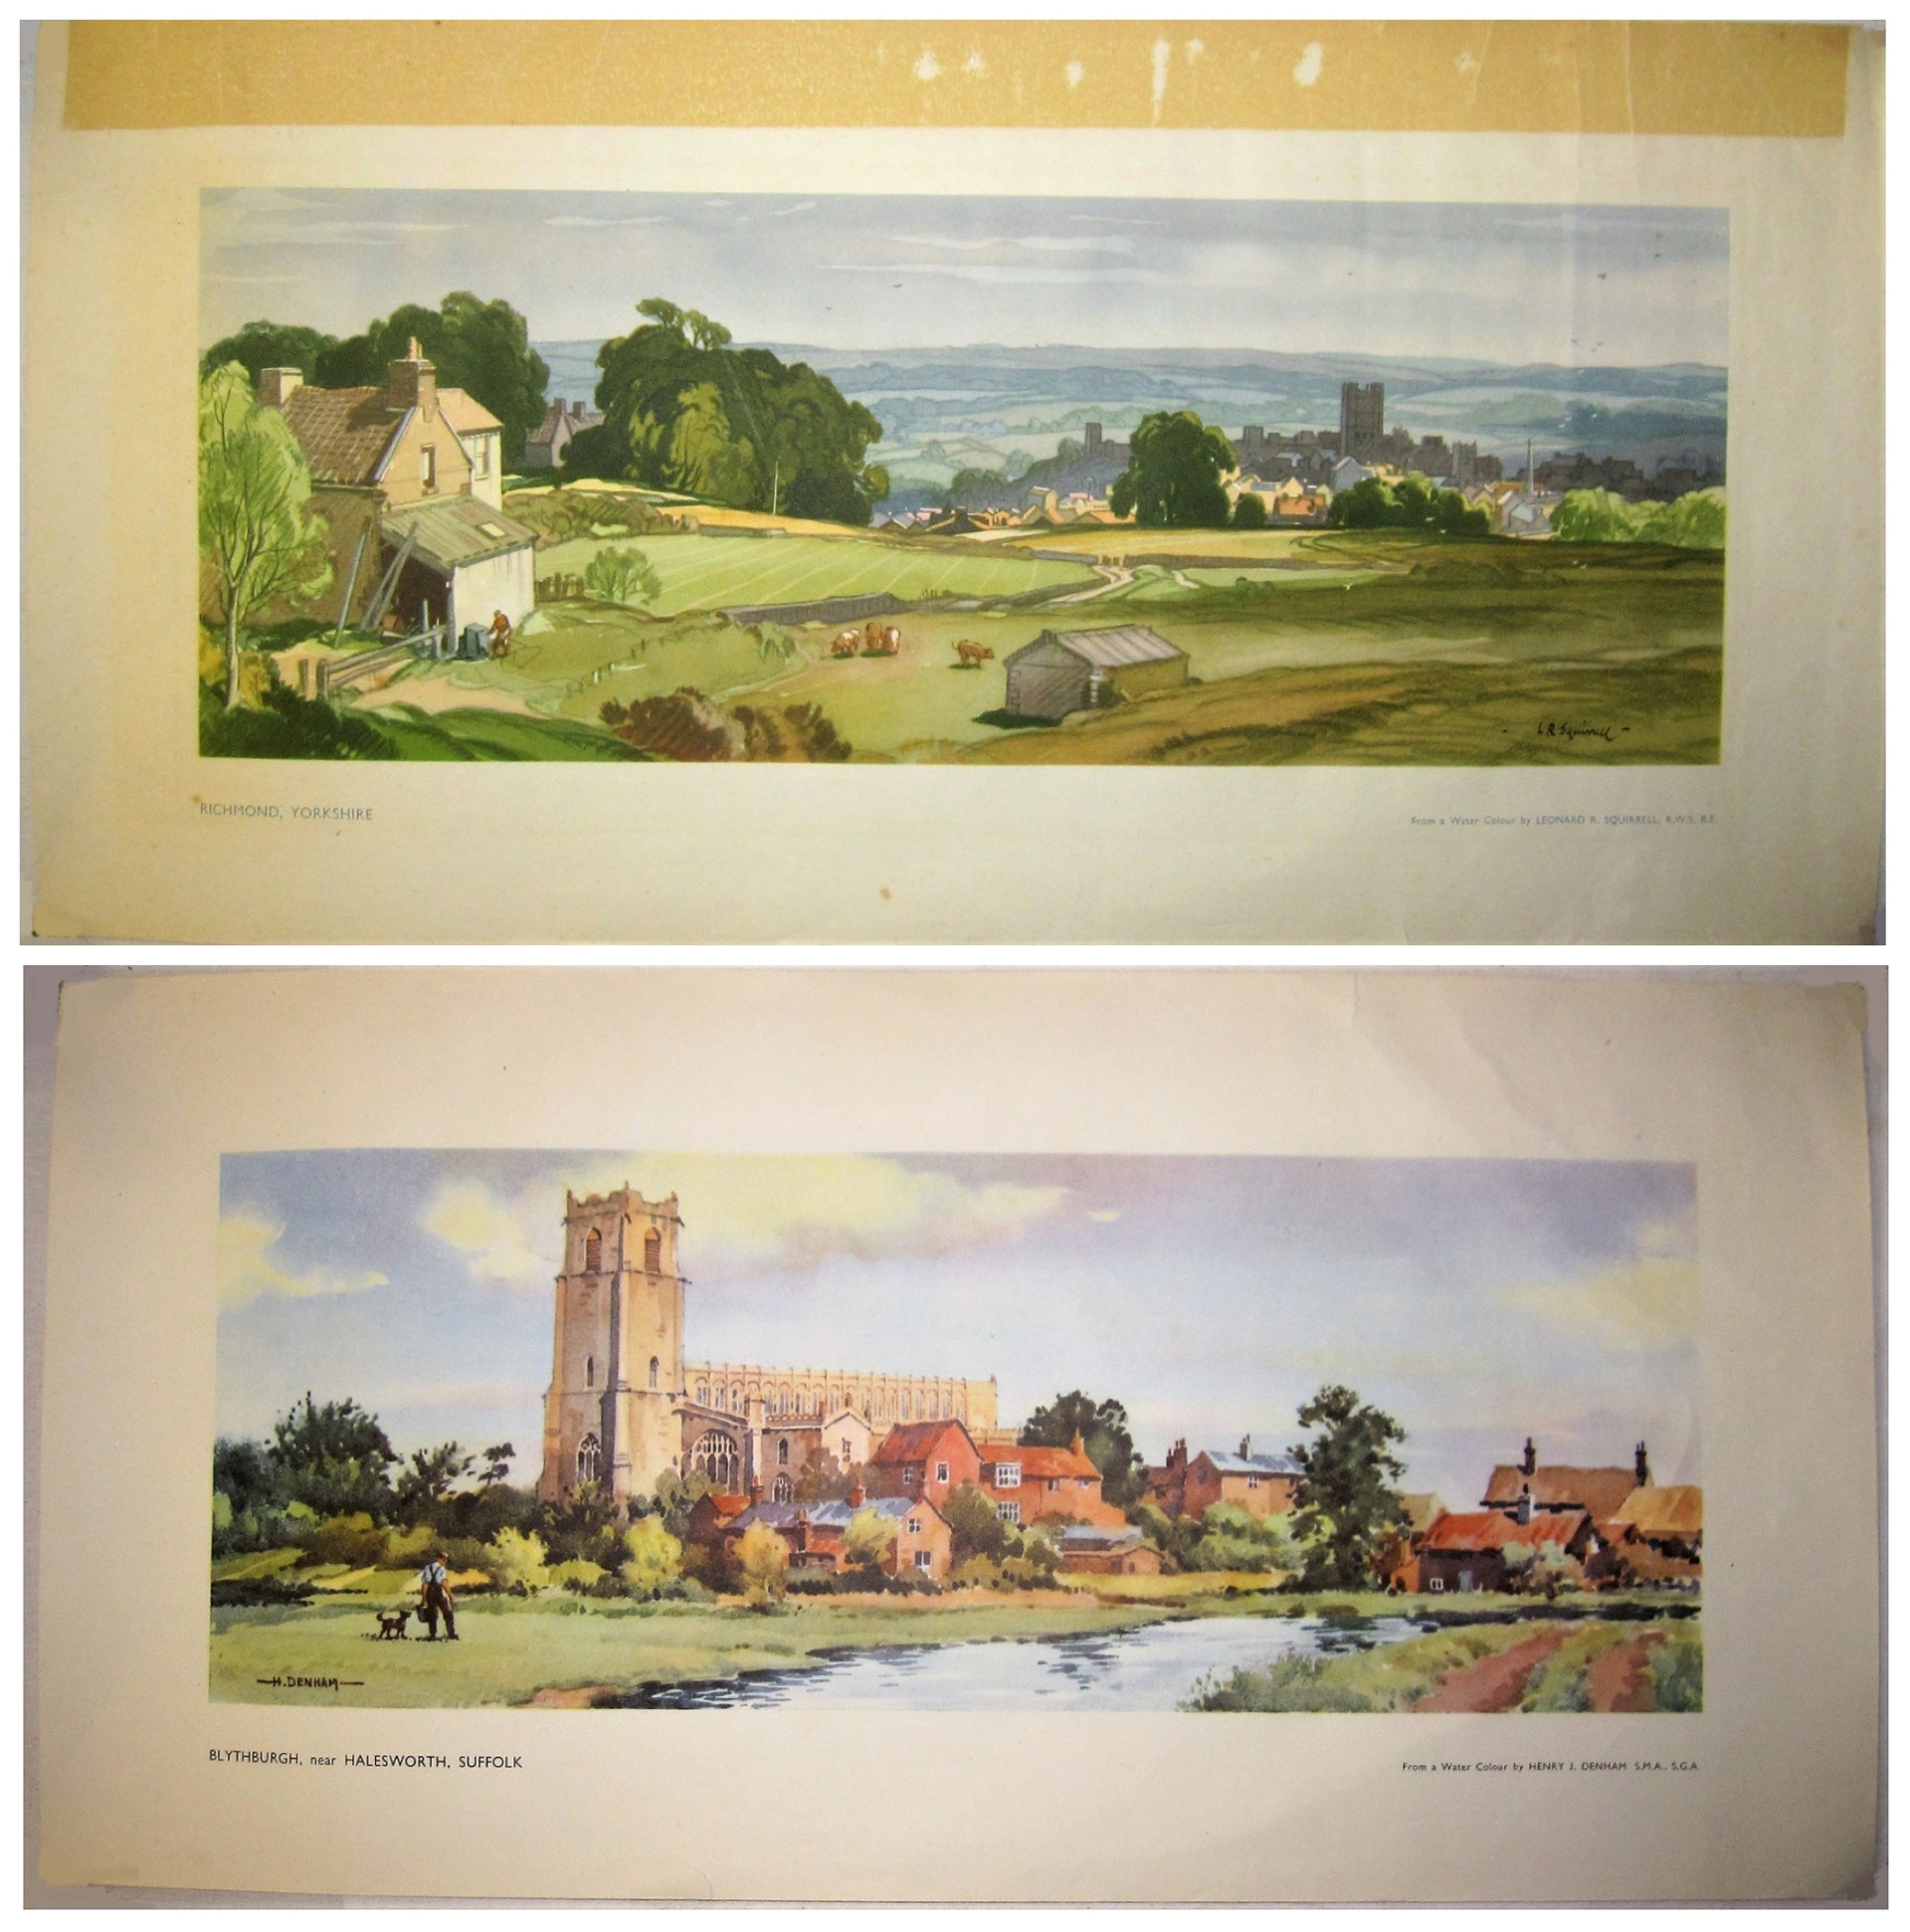 2 x Unframed carriage prints. RICHMOND YORKSHIRE by L Squirrell together with BLYTHBURGH SUFFOLK